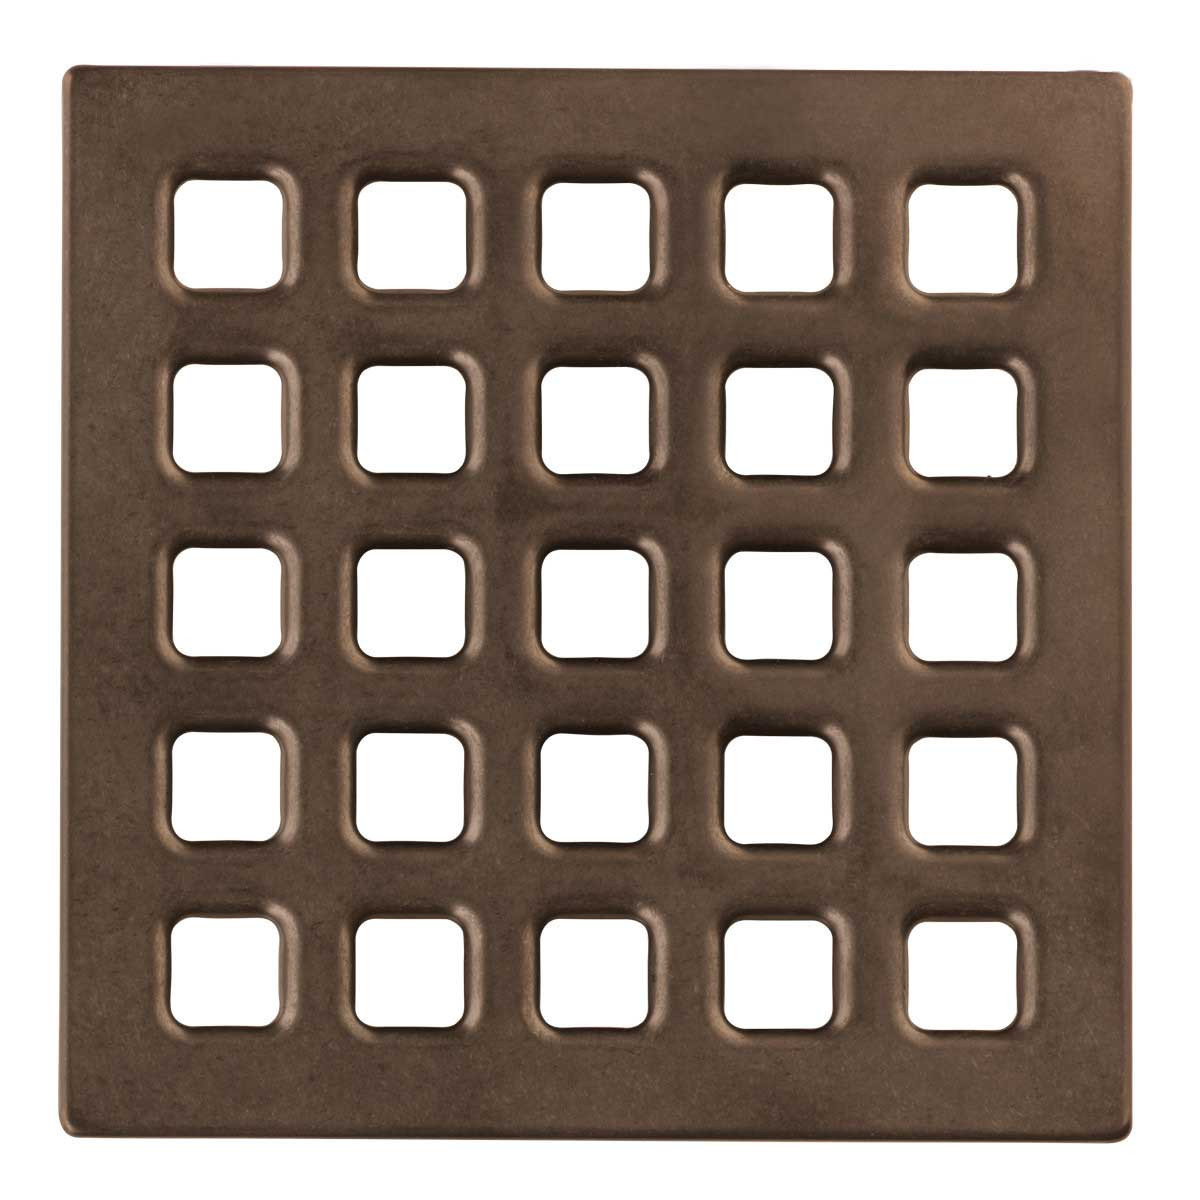 Oil Rubbed Bronzed USG Durock Pro Series 5 inch Grate 170168